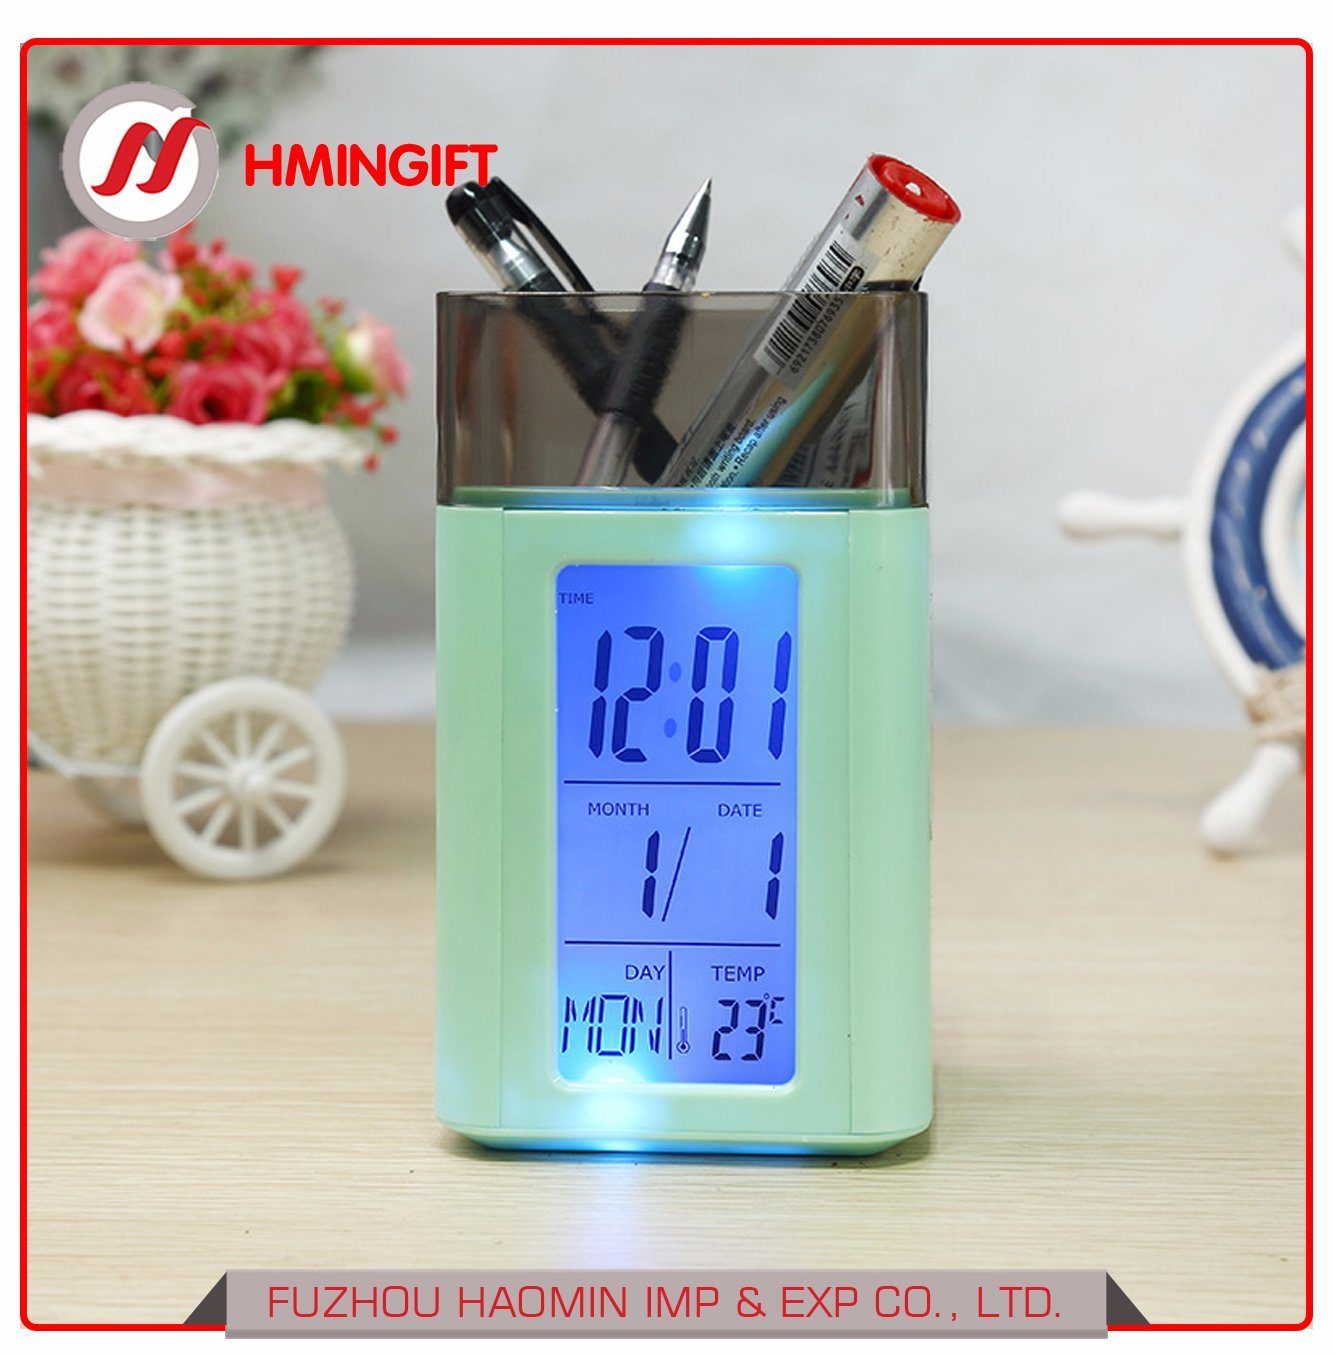 Wholesale Lcd Clock Buy Reliable From Digital Multifunction Temperature Humidity Meter With Alarm Date Week Calender Htc 2 Led Clocks Mesh Pen Pencil Holder Calendar Timer Grid Time Temp Multifunctional Display Container